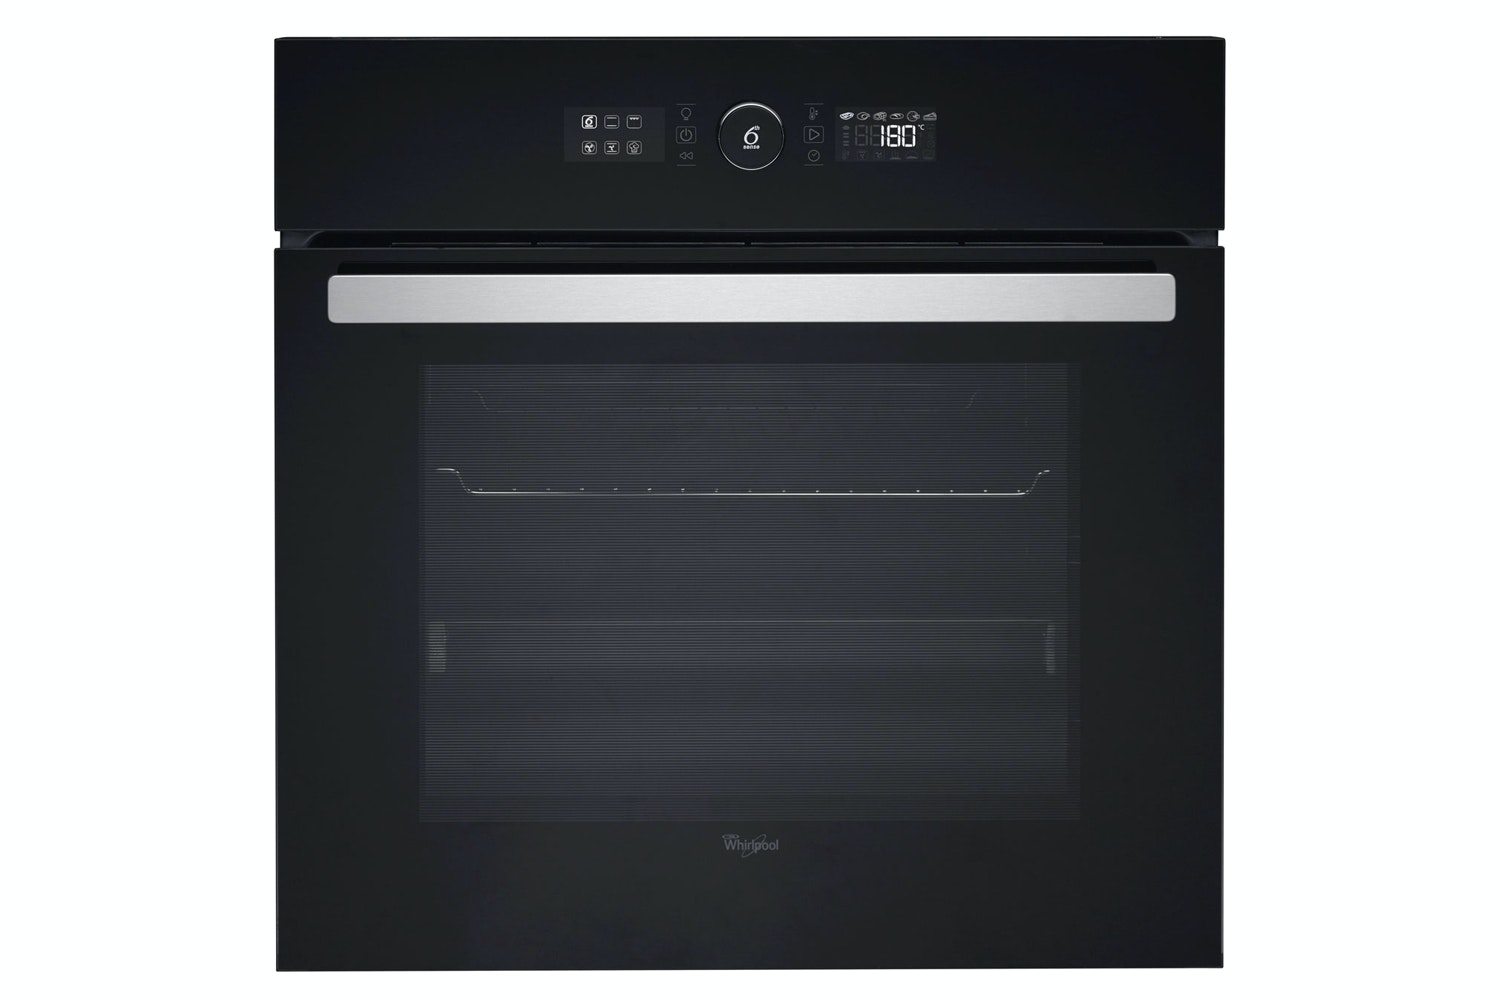 Whirlpool Built-in Single Oven | AKZ96230/NB